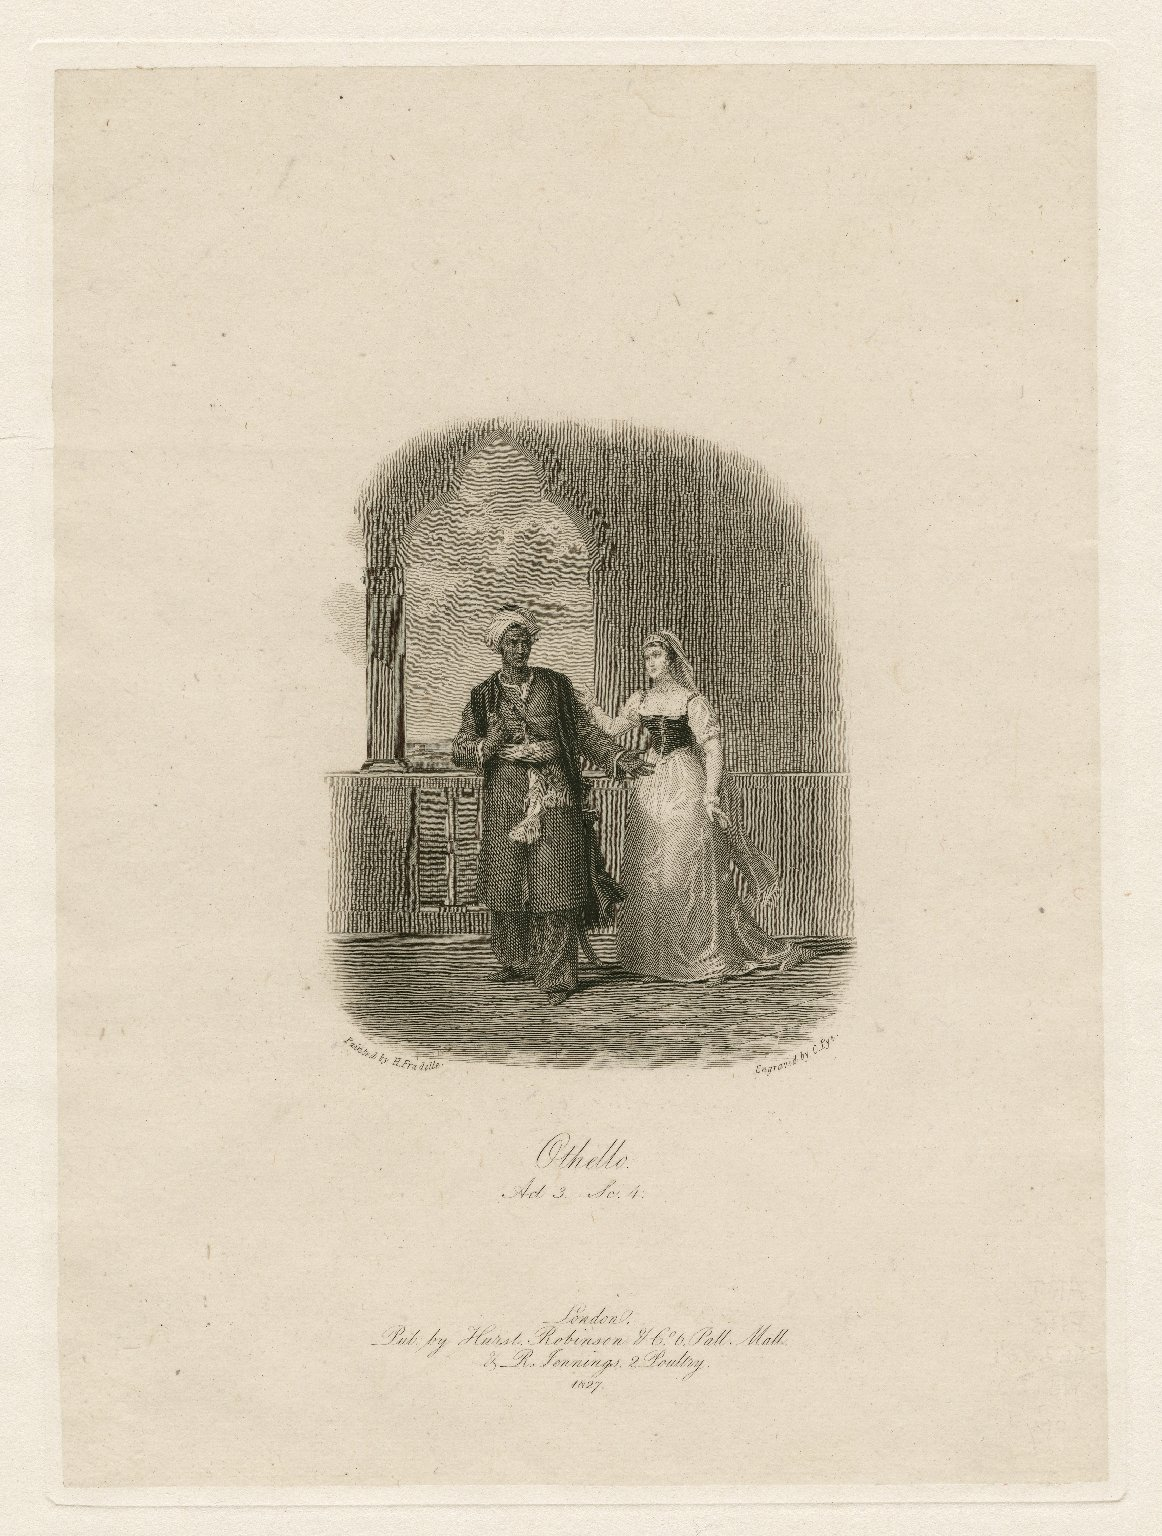 Othello, act III, sc. 4 [graphic] / painted by H. Fradelle ; engraved by C. Pye.